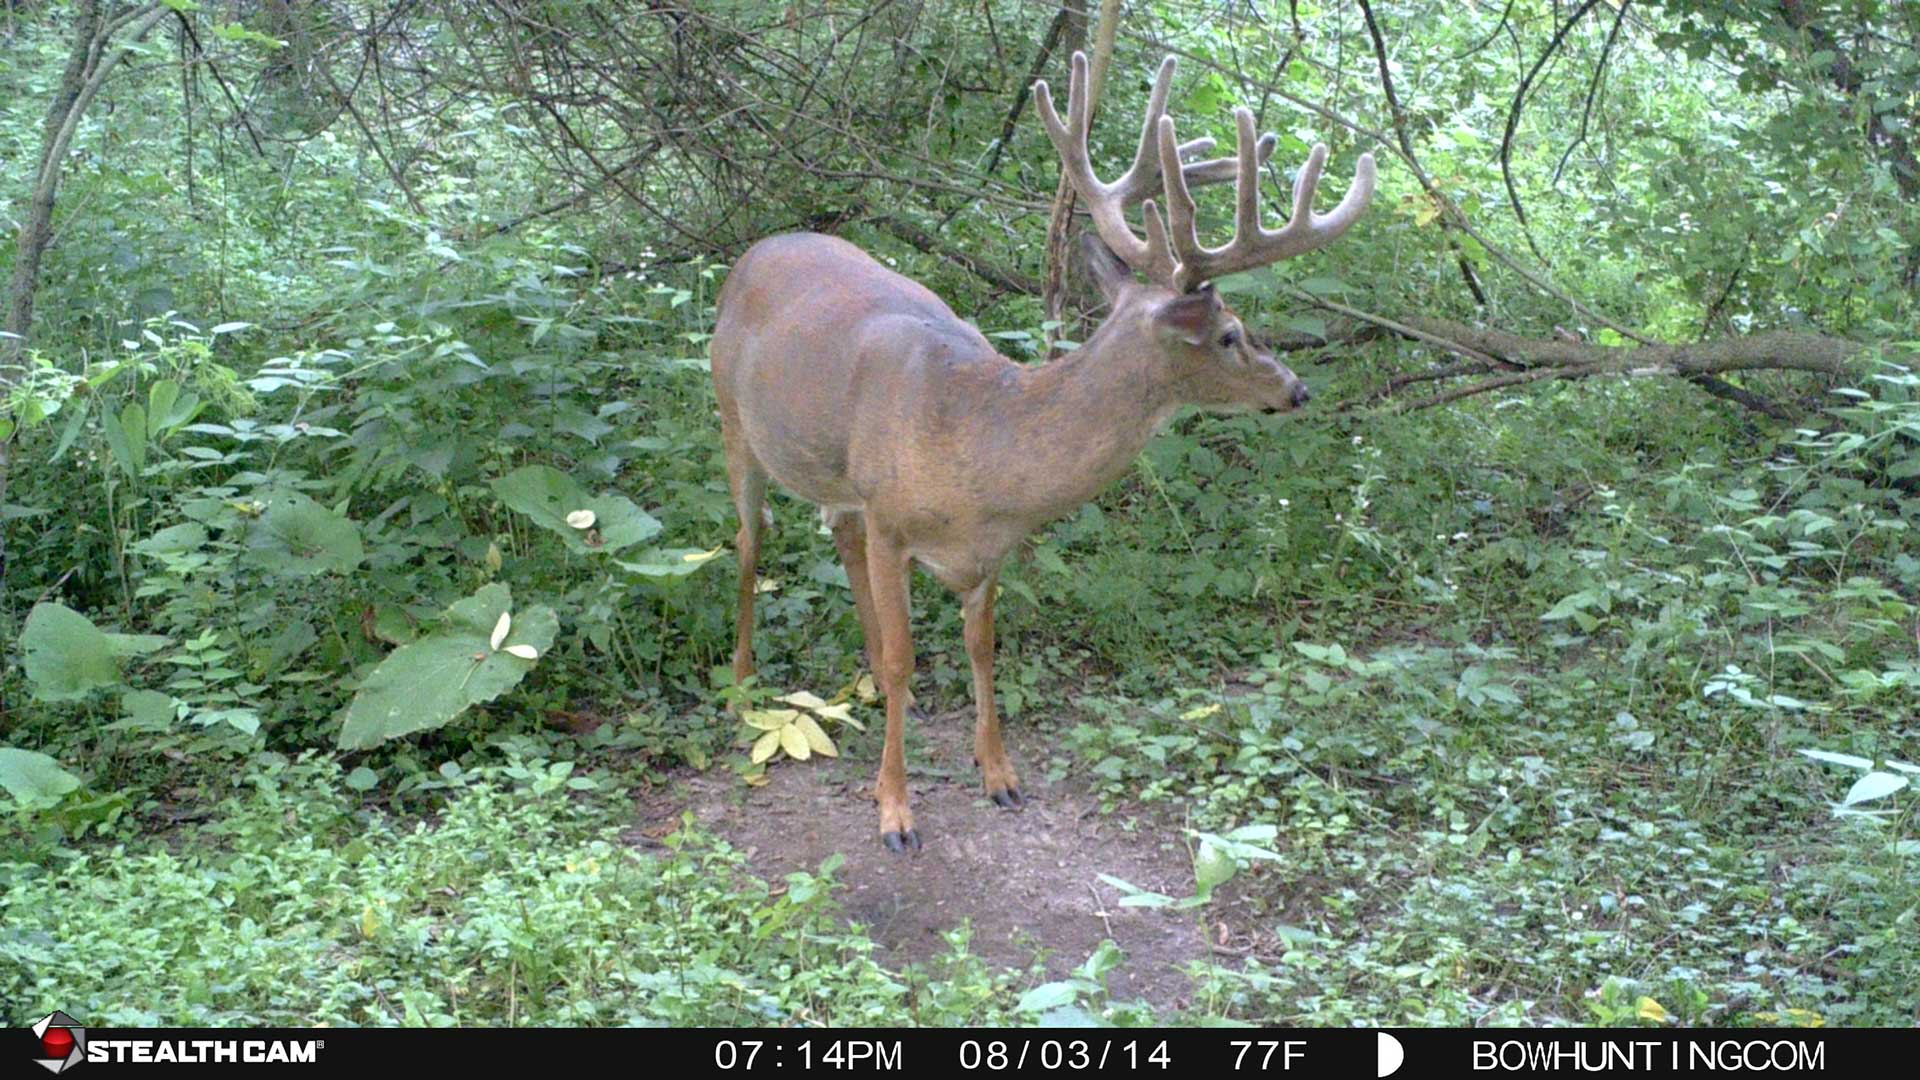 Sooner or later every serious bowhunter will find themselves longing to punch their tag on an early season velvet buck.